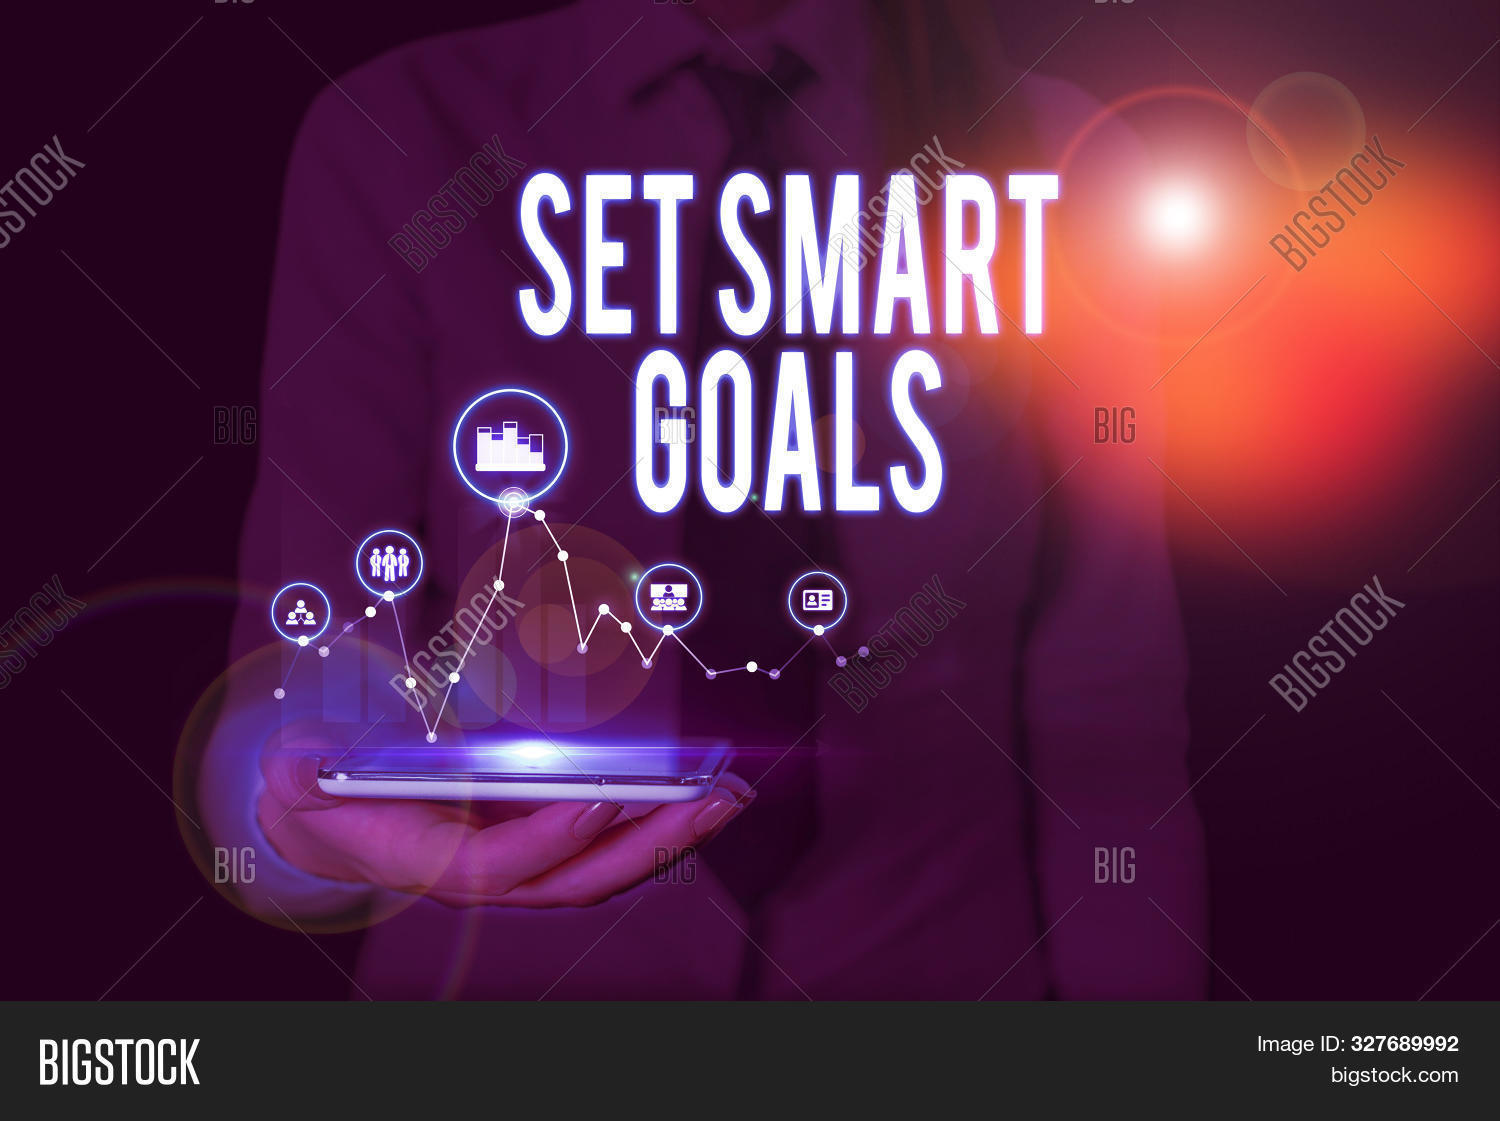 Text Sign Showing Set Smart Goals. Conceptual Photo Giving Criteria To Guide In The Setting Of Objec